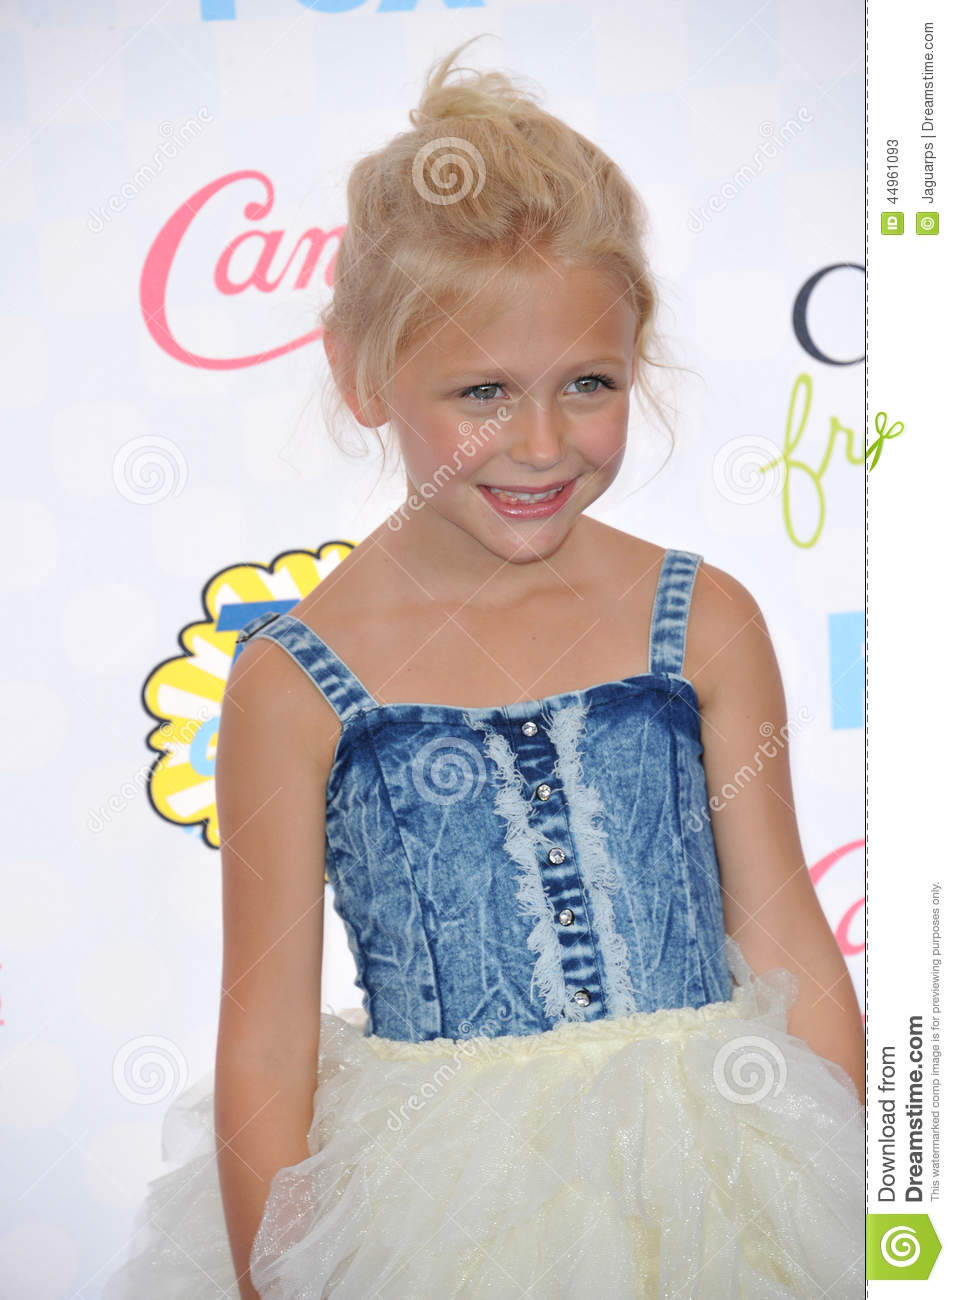 alyvia alyn lind moviesalyvia alyn lind instagram, alyvia alyn lind, alyvia alyn lind blended, alyvia alyn lind imdb, alyvia alyn lind biography, alyvia alyn lind twitter, alyvia alyn lind youtube, alyvia alyn lind movies, alyvia alyn lind commercial, alyvia alyn lind net worth, alyvia alyn lind dolly parton, alyvia alyn lind young and the restless, alyvia alyn lind walmart commercial, alyvia alyn lind singing, alyvia alyn lind sister, alyvia alyn lind walmart, alyvia alyn lind family, alyvia alyn lind revenge, alyvia alyn lind eggo, alyvia alyn lind interview